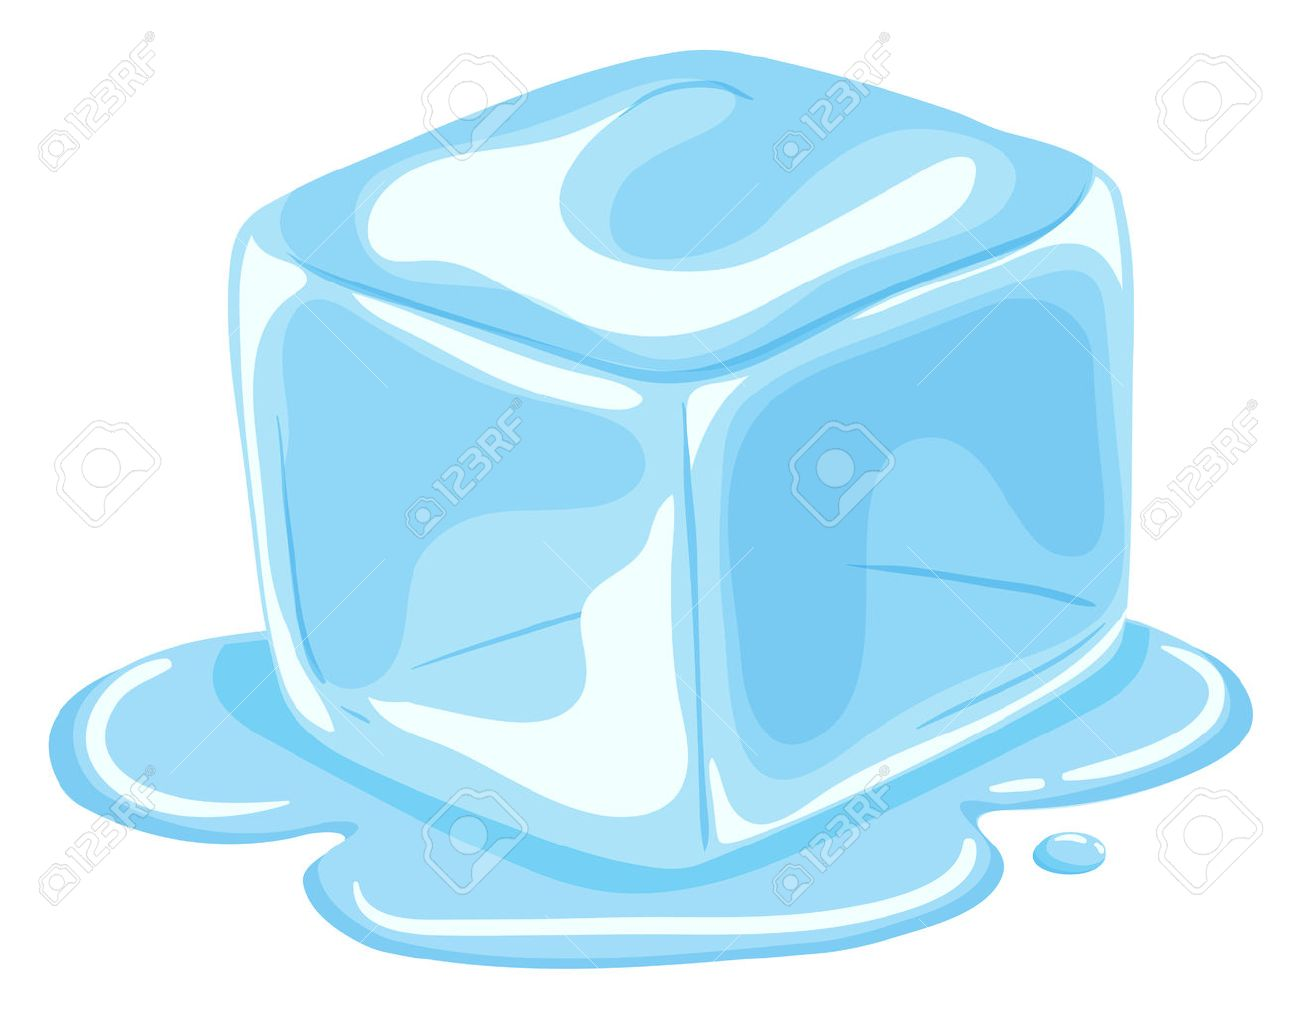 piece of ice cube melting illustration royalty free cliparts rh 123rf com ice cube clip art free ice cube clipart images